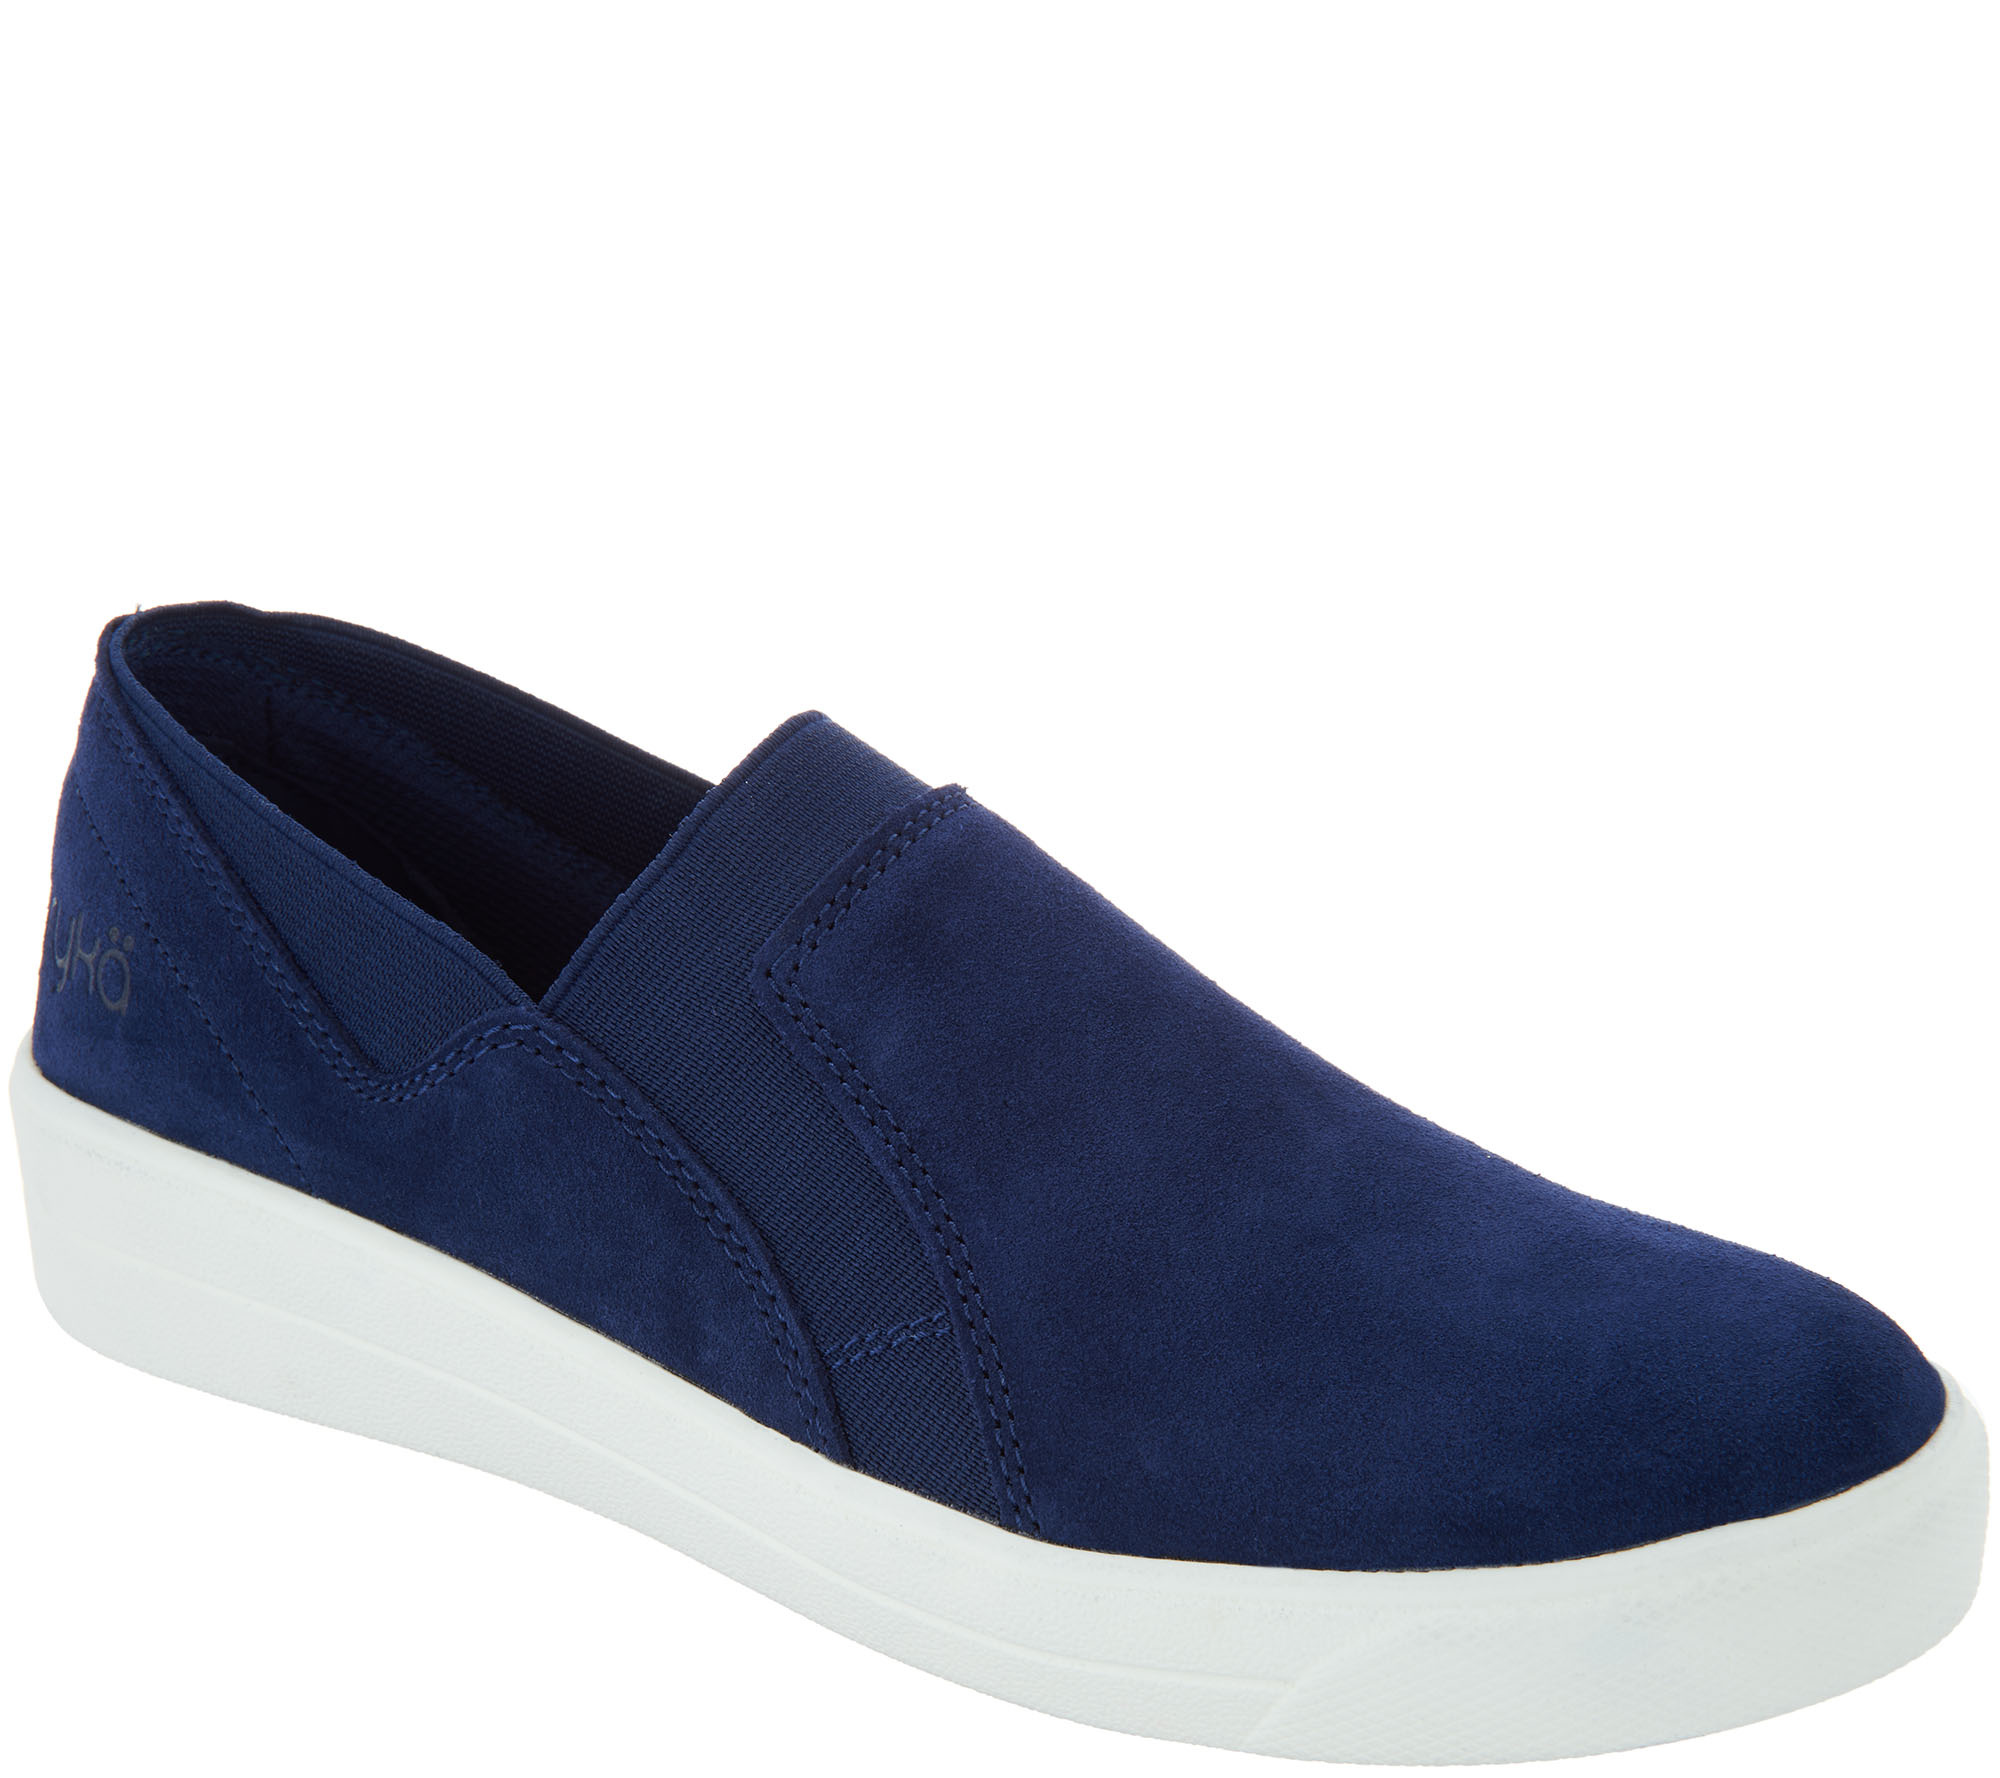 Ryka Suede Double Gore Slip-On Shoes - Verve